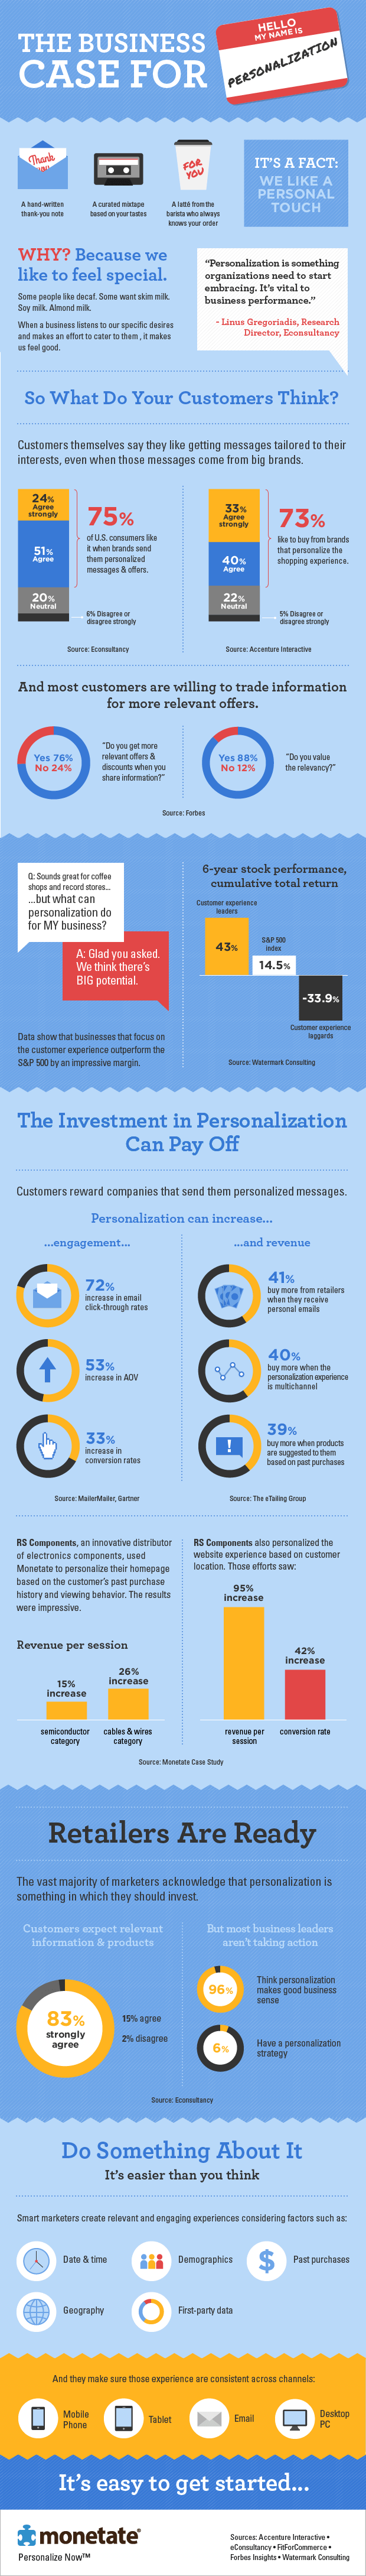 The Return on Investment on Personalization